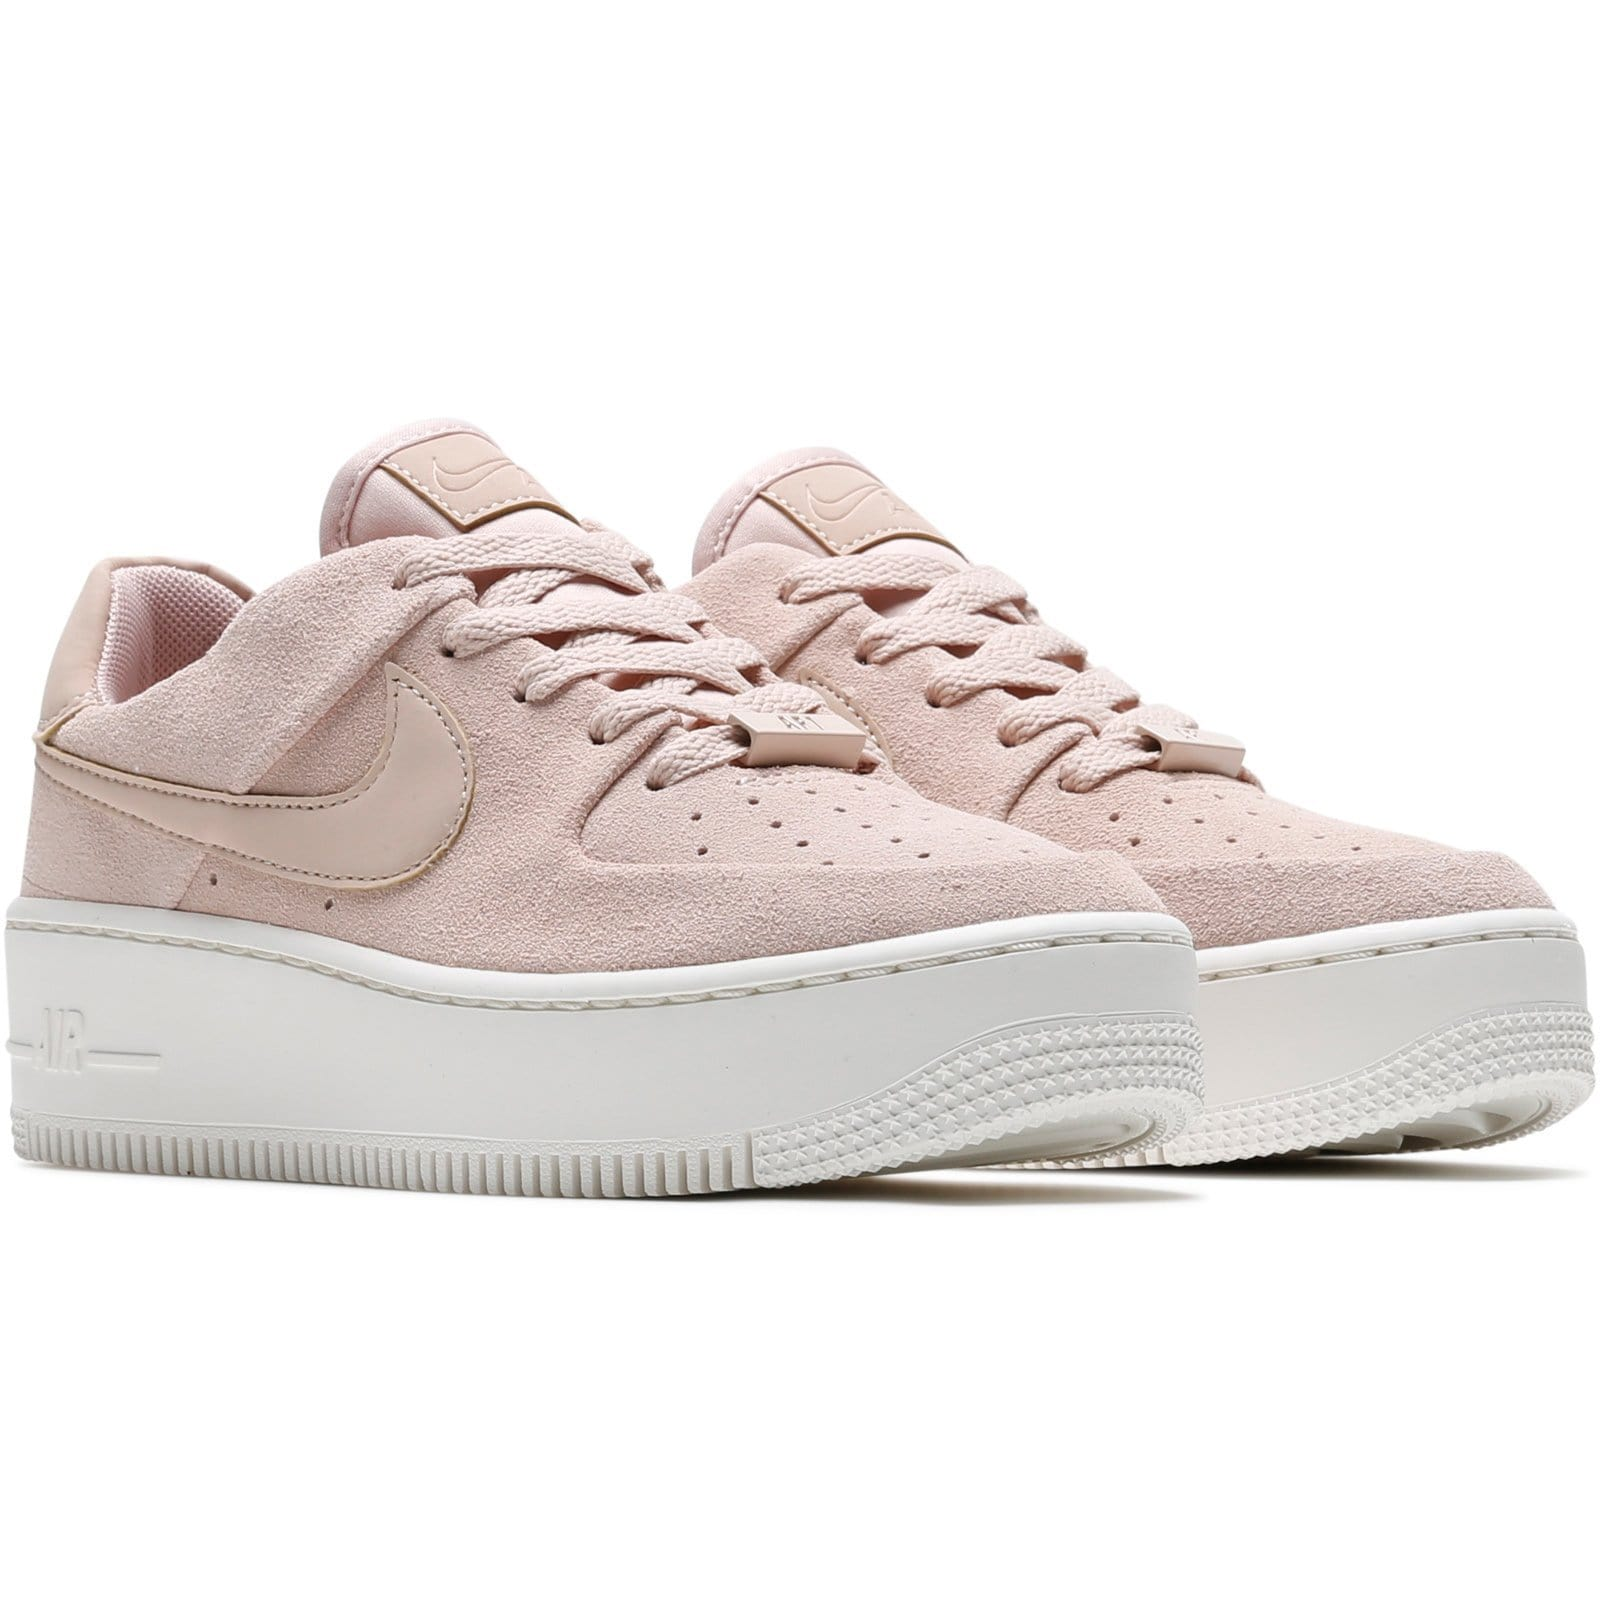 newest 263a6 ab790 Nike Women s AIR FORCE 1 SAGE LOW AR5339 201